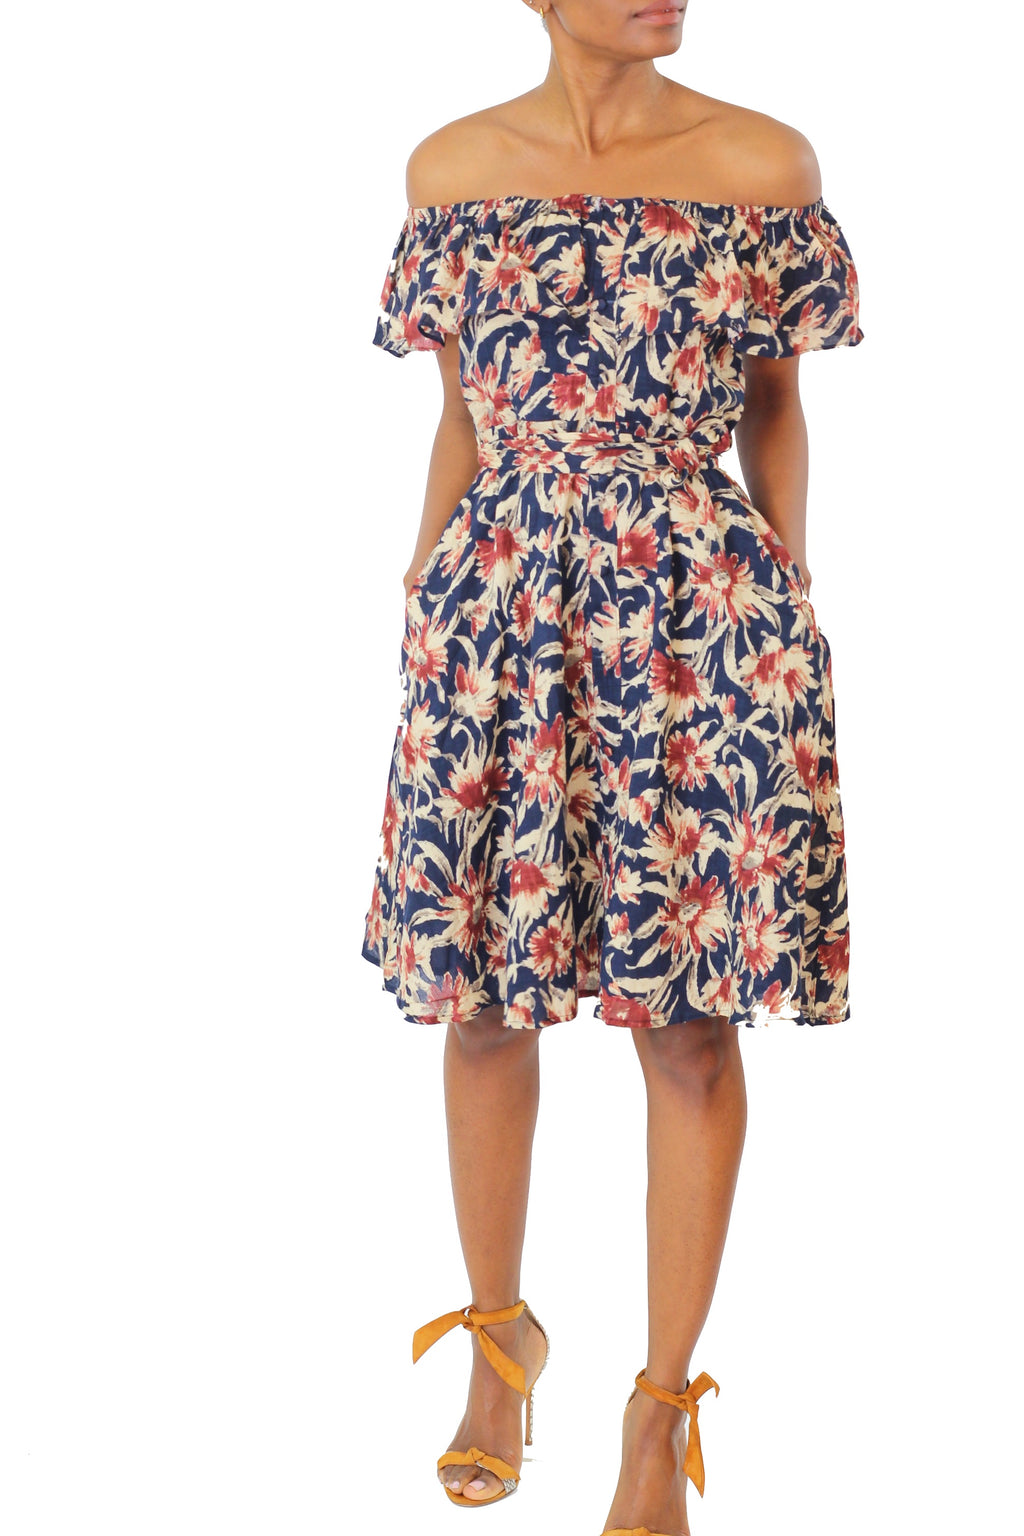 Floral Off Shoulder Dress - Cultur'd Collective